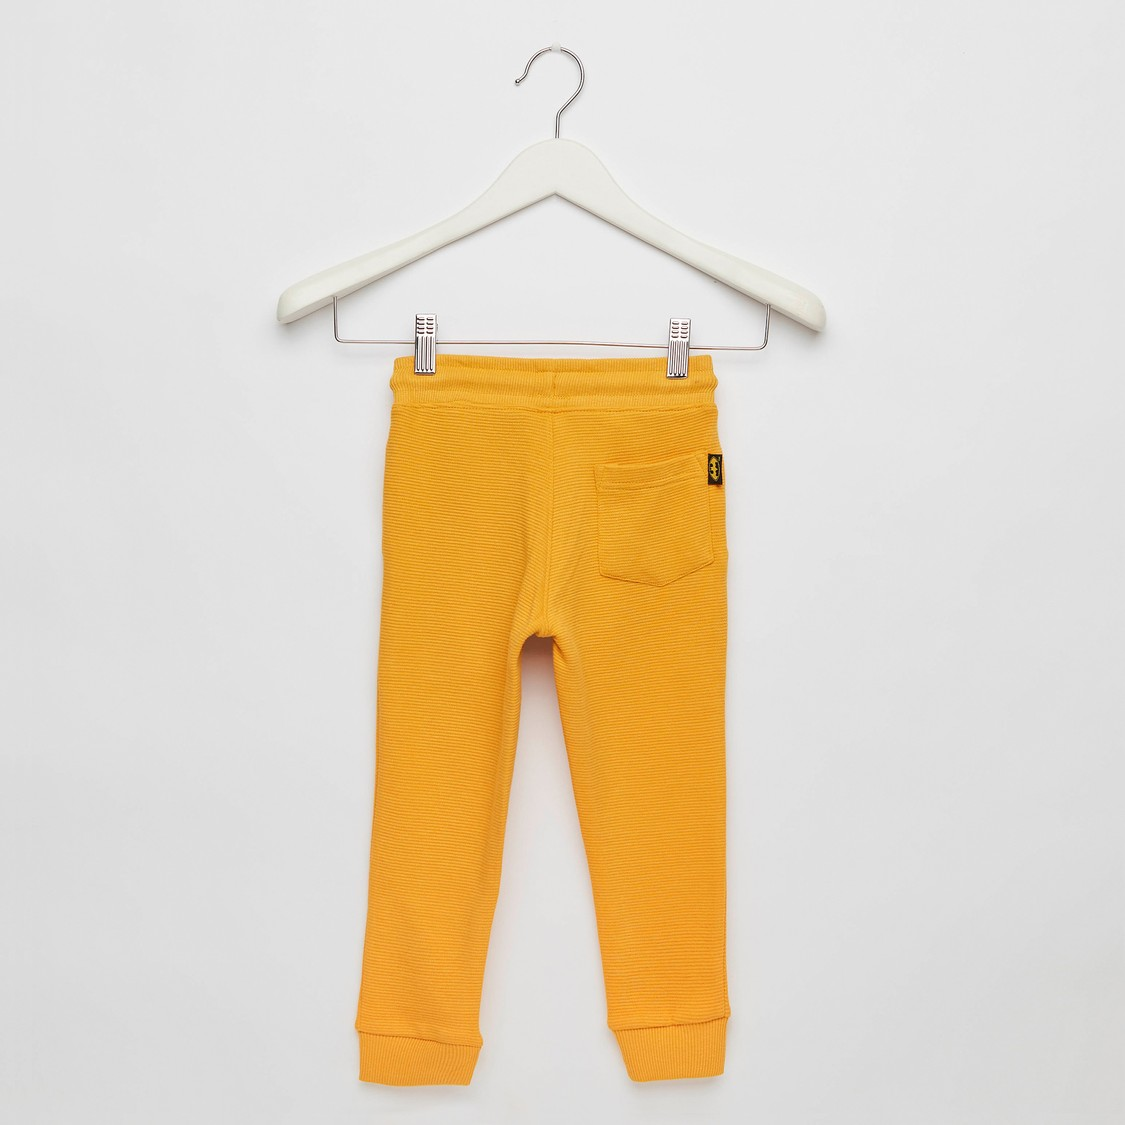 Textured Jog Pants with Batman Embroidery and Drawstring